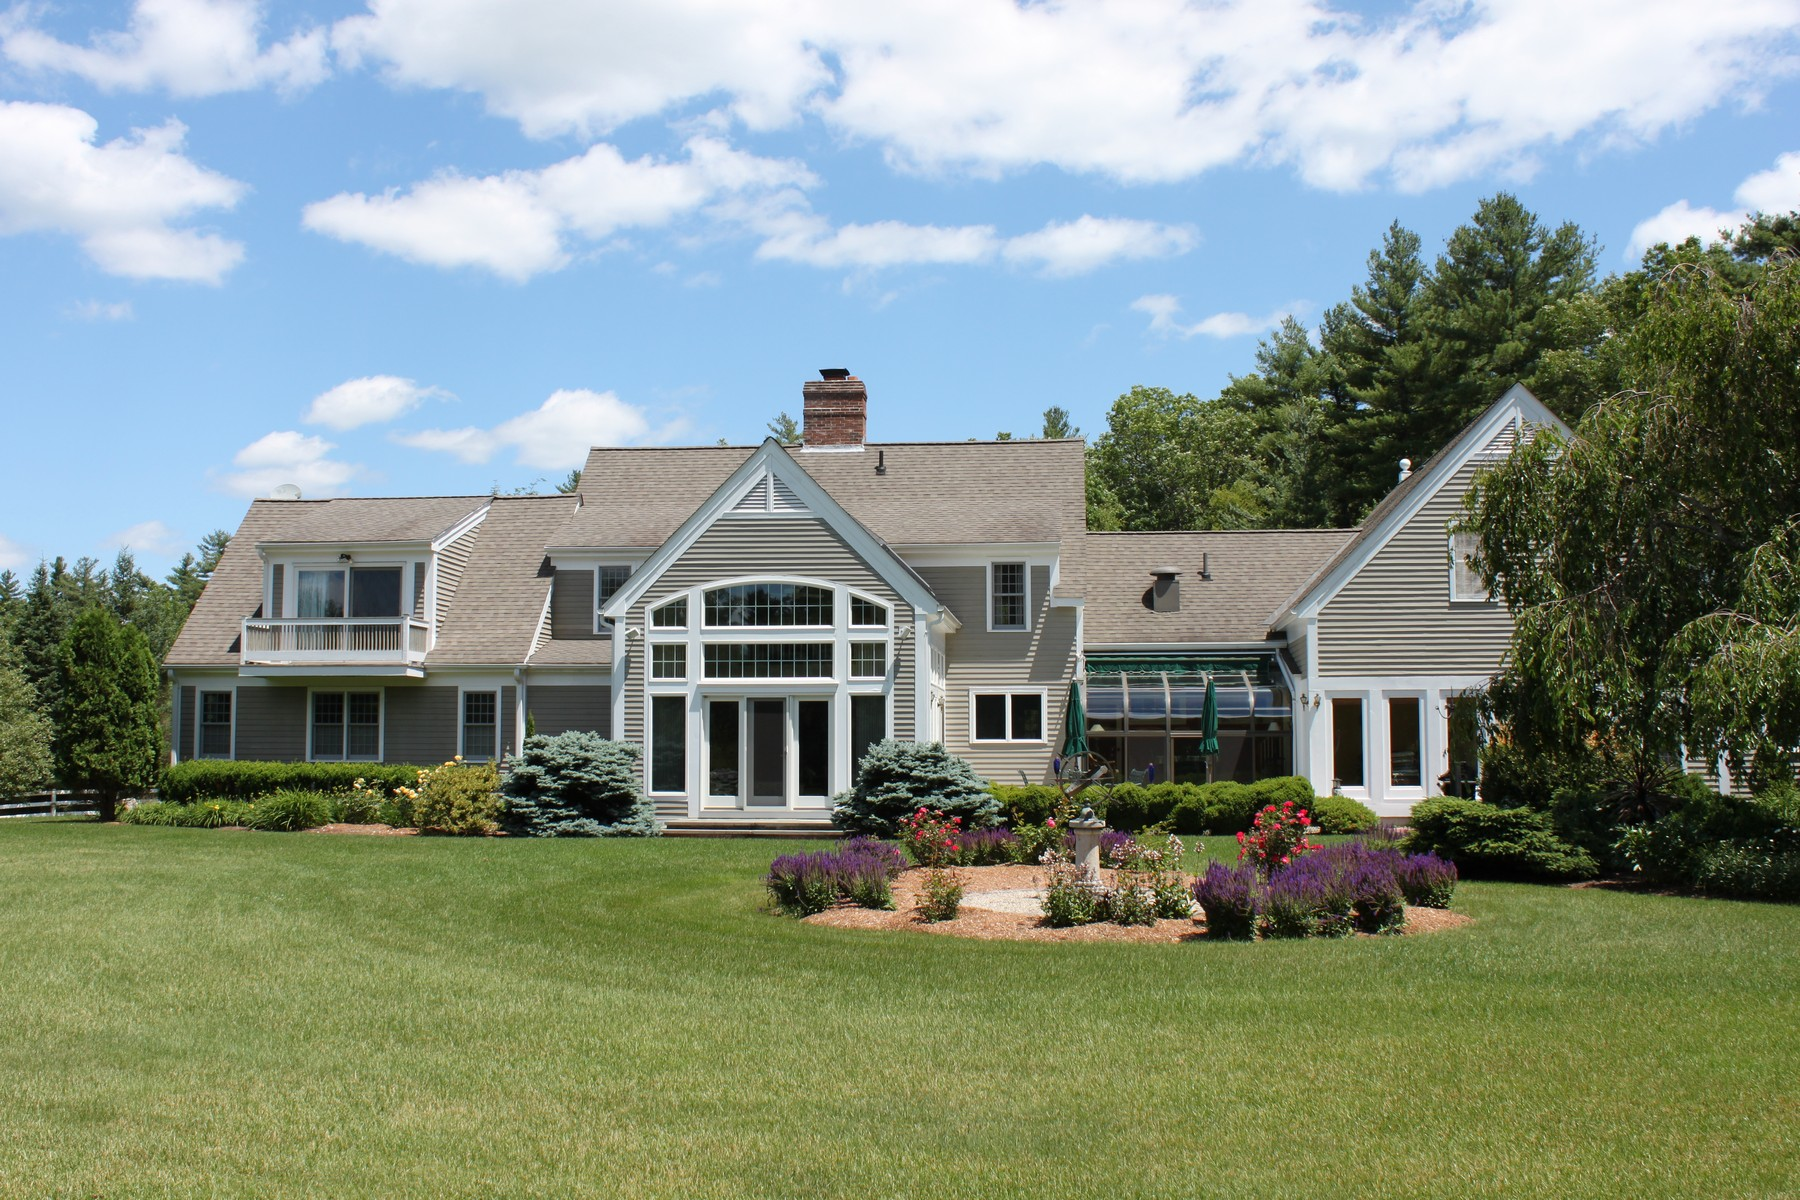 Villa per Vendita alle ore Large Custom New England Cape 5 Still River Rd Bolton, Massachusetts, 01740 Stati Uniti